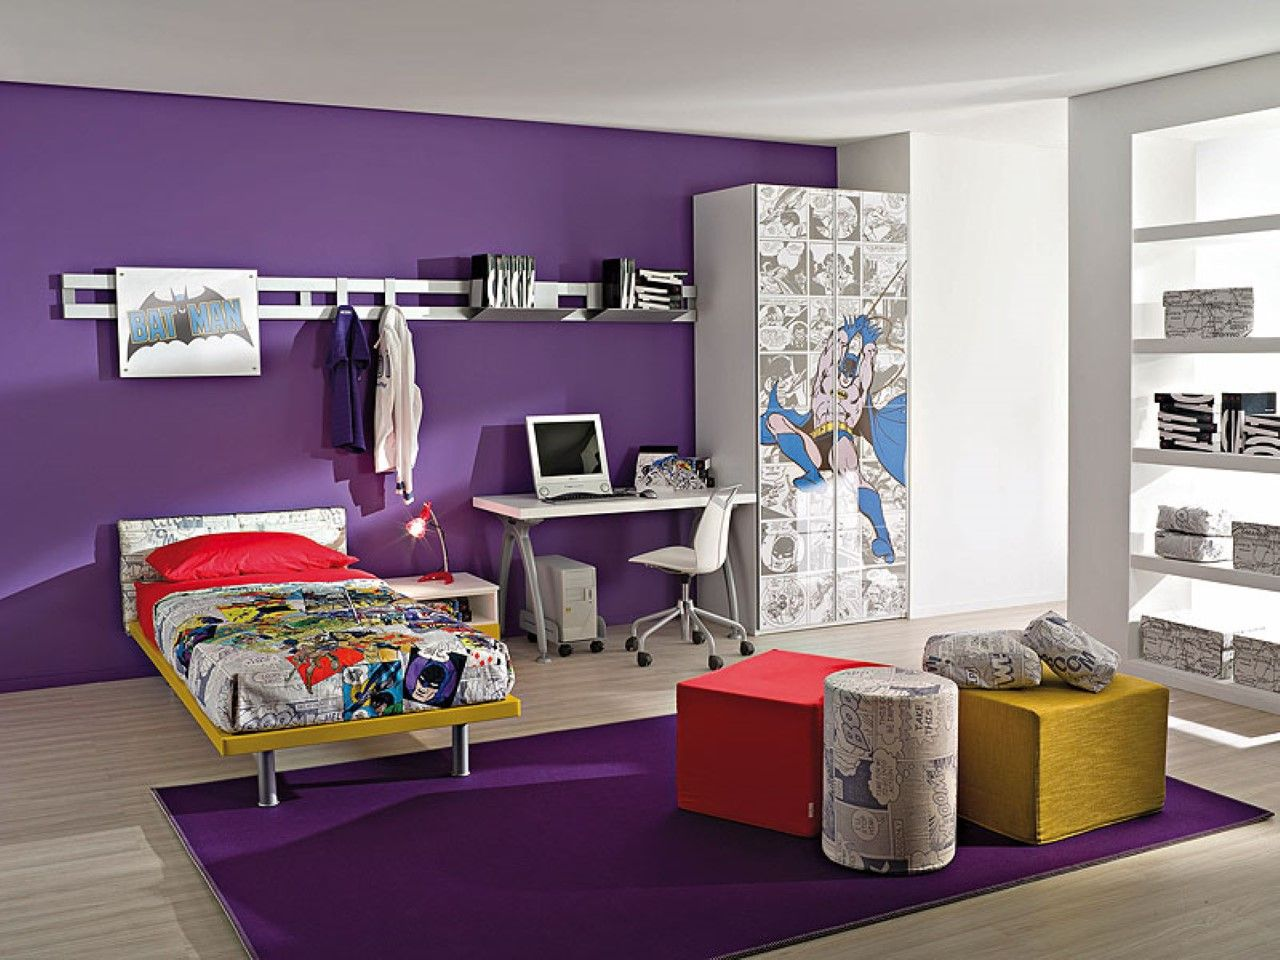 Comfortable Computer Chair And Superhero Furniture Set Feat Purple